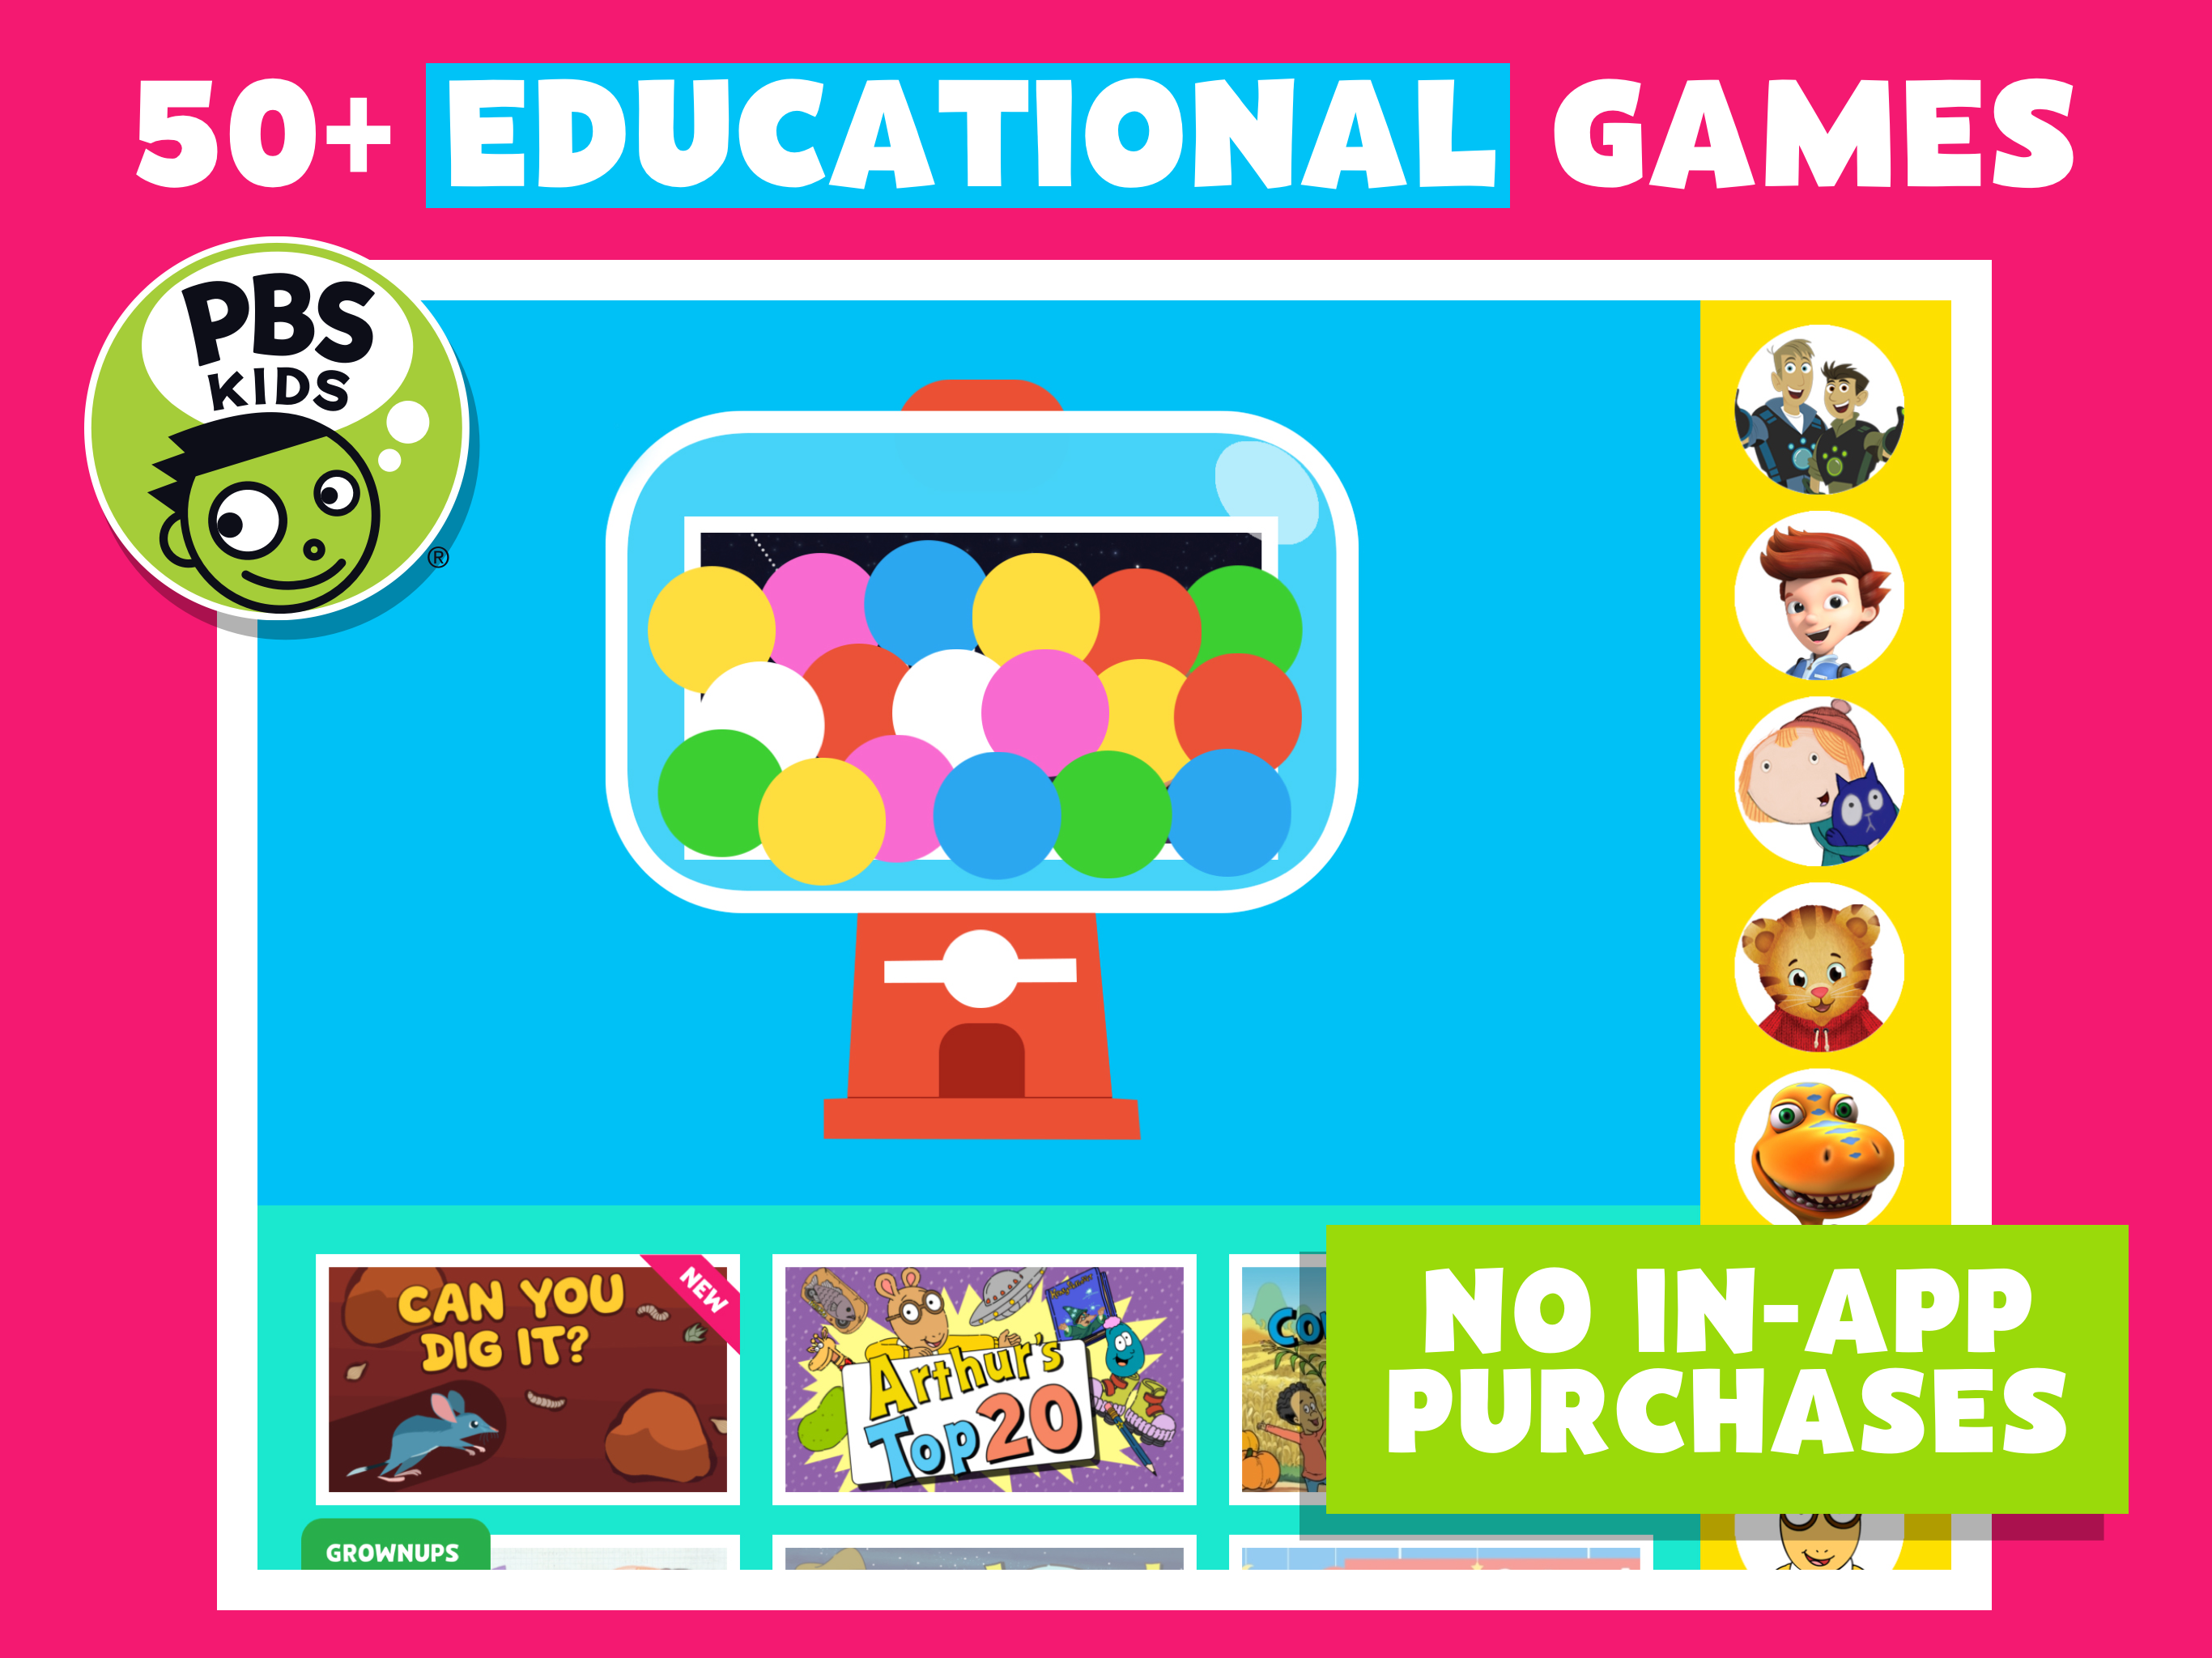 Free Kids Games Online Kidonlinegame: Play PBS KIDS Games Mobile Downloads